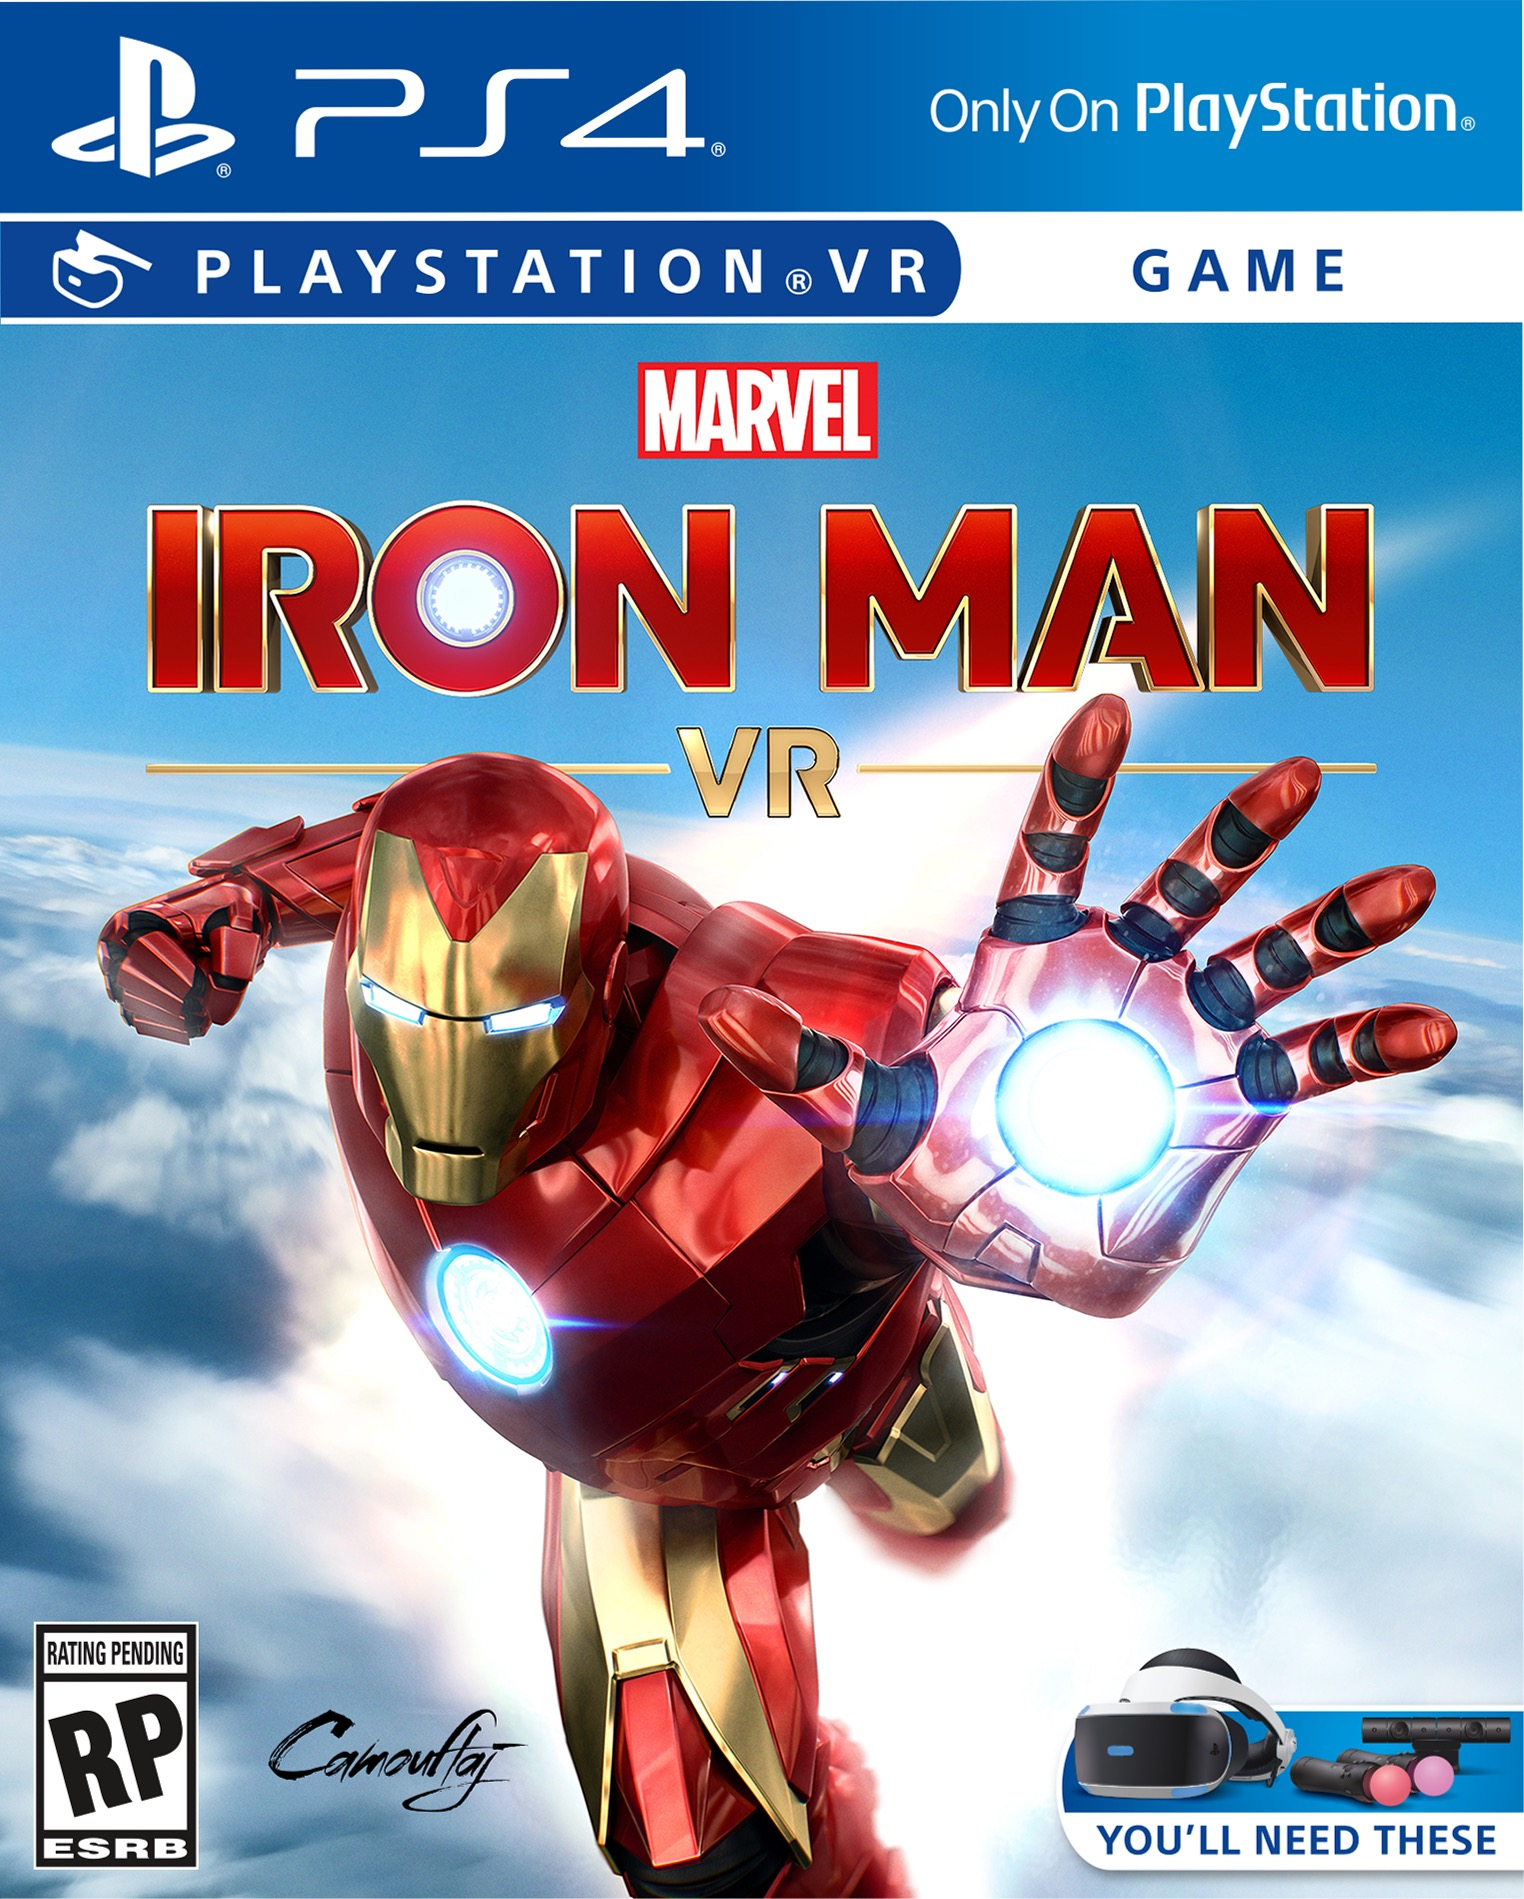 Iron Man VR: Sony llevará a Iron Man a la realidad virtual en 2019